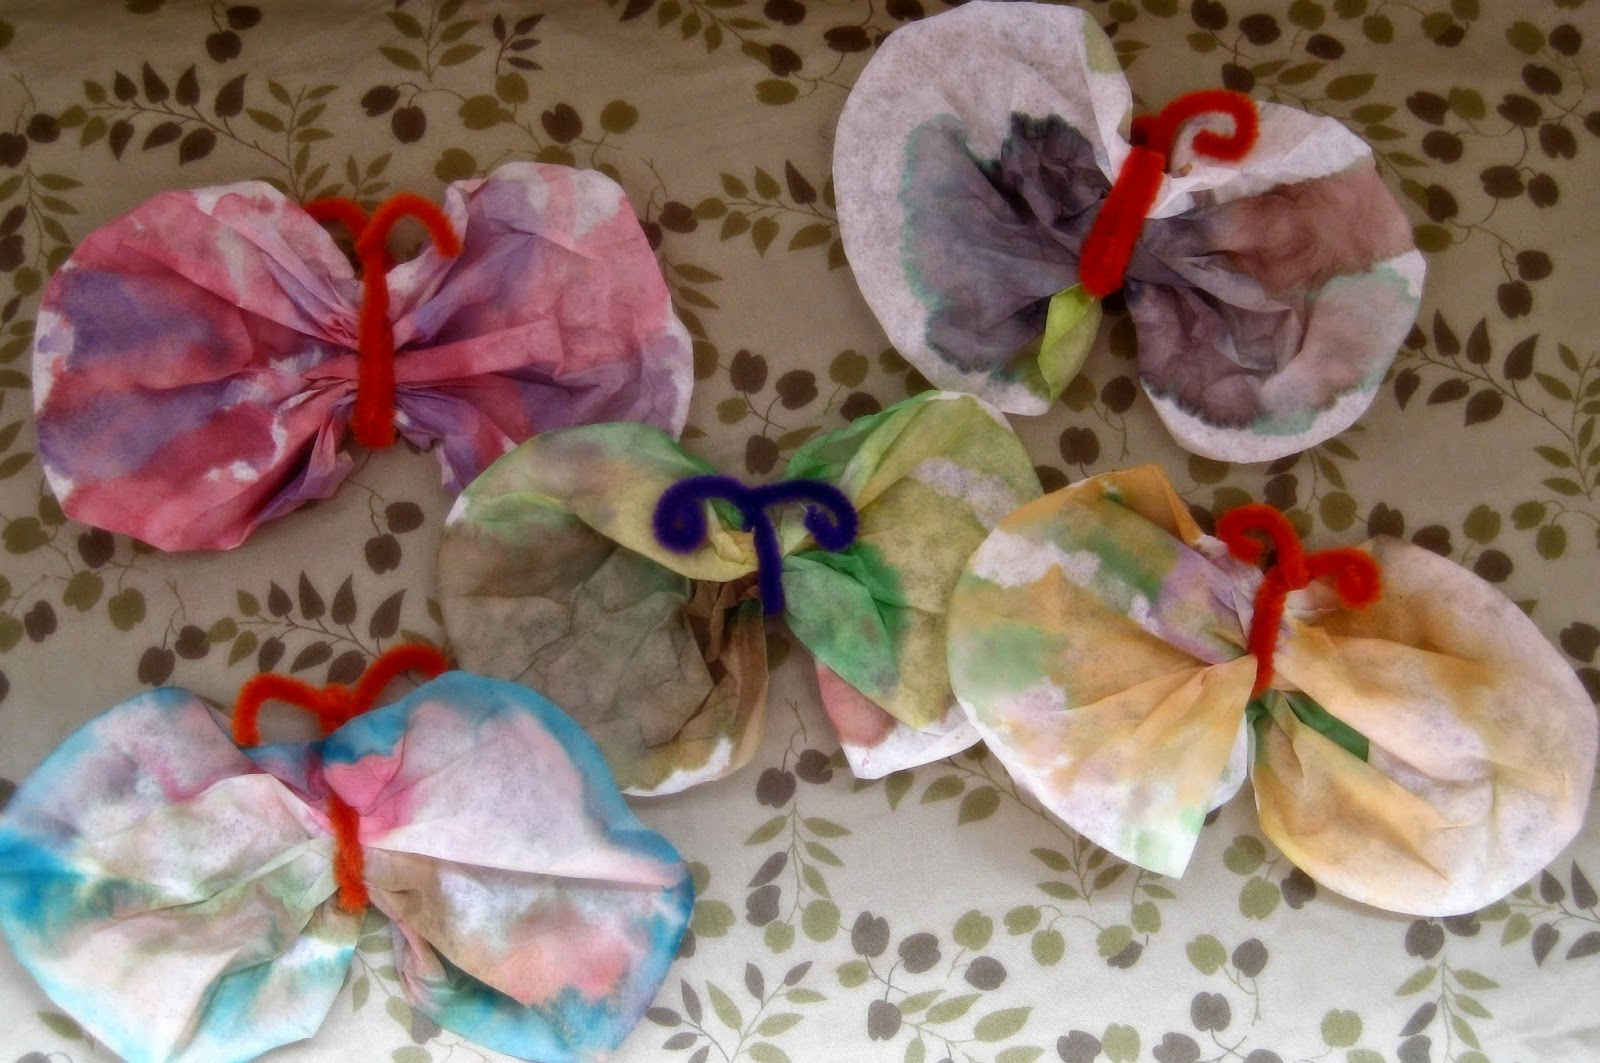 http://lydiashandmadelife.blogspot.com/2014/05/coffee-filter-butterflies.html